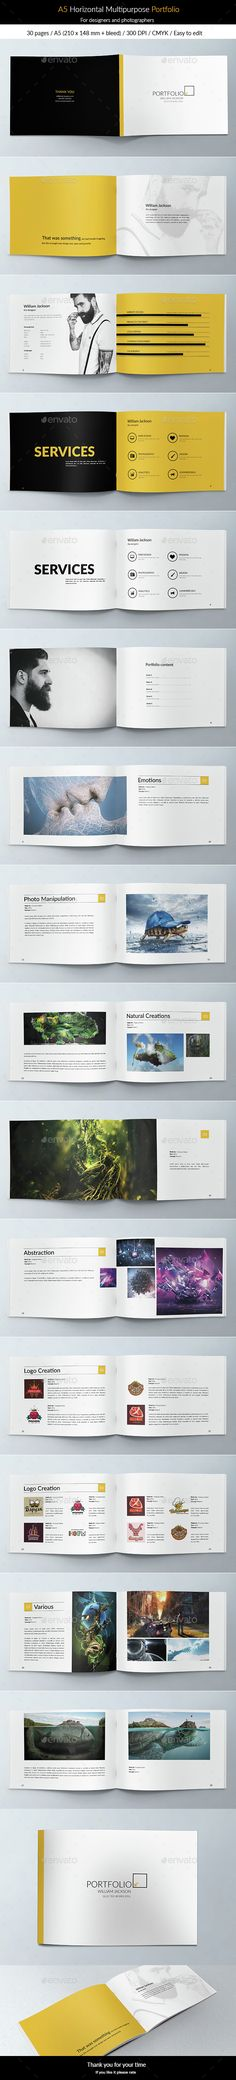 A5 Horizontal Multipurpose Portfolio Brochure Template PSD. Download here: http://graphicriver.net/item/a5-horizontal-multipurpose-portfolio/15221469?ref=ksioks